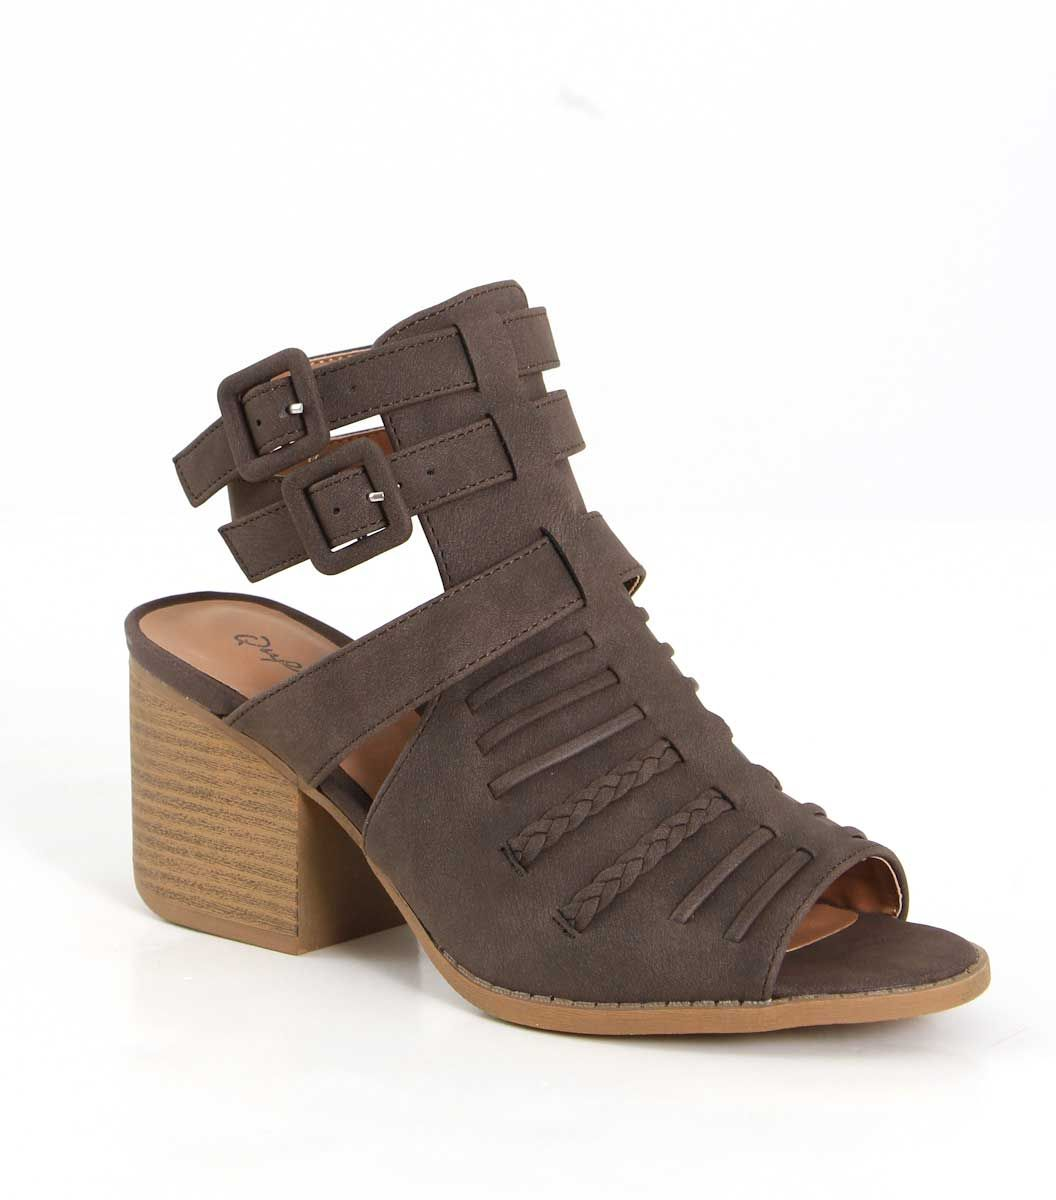 06d62f33fcd6f Qupid Shoes Core Strappy Heels in Brown CORE-96X BROWN